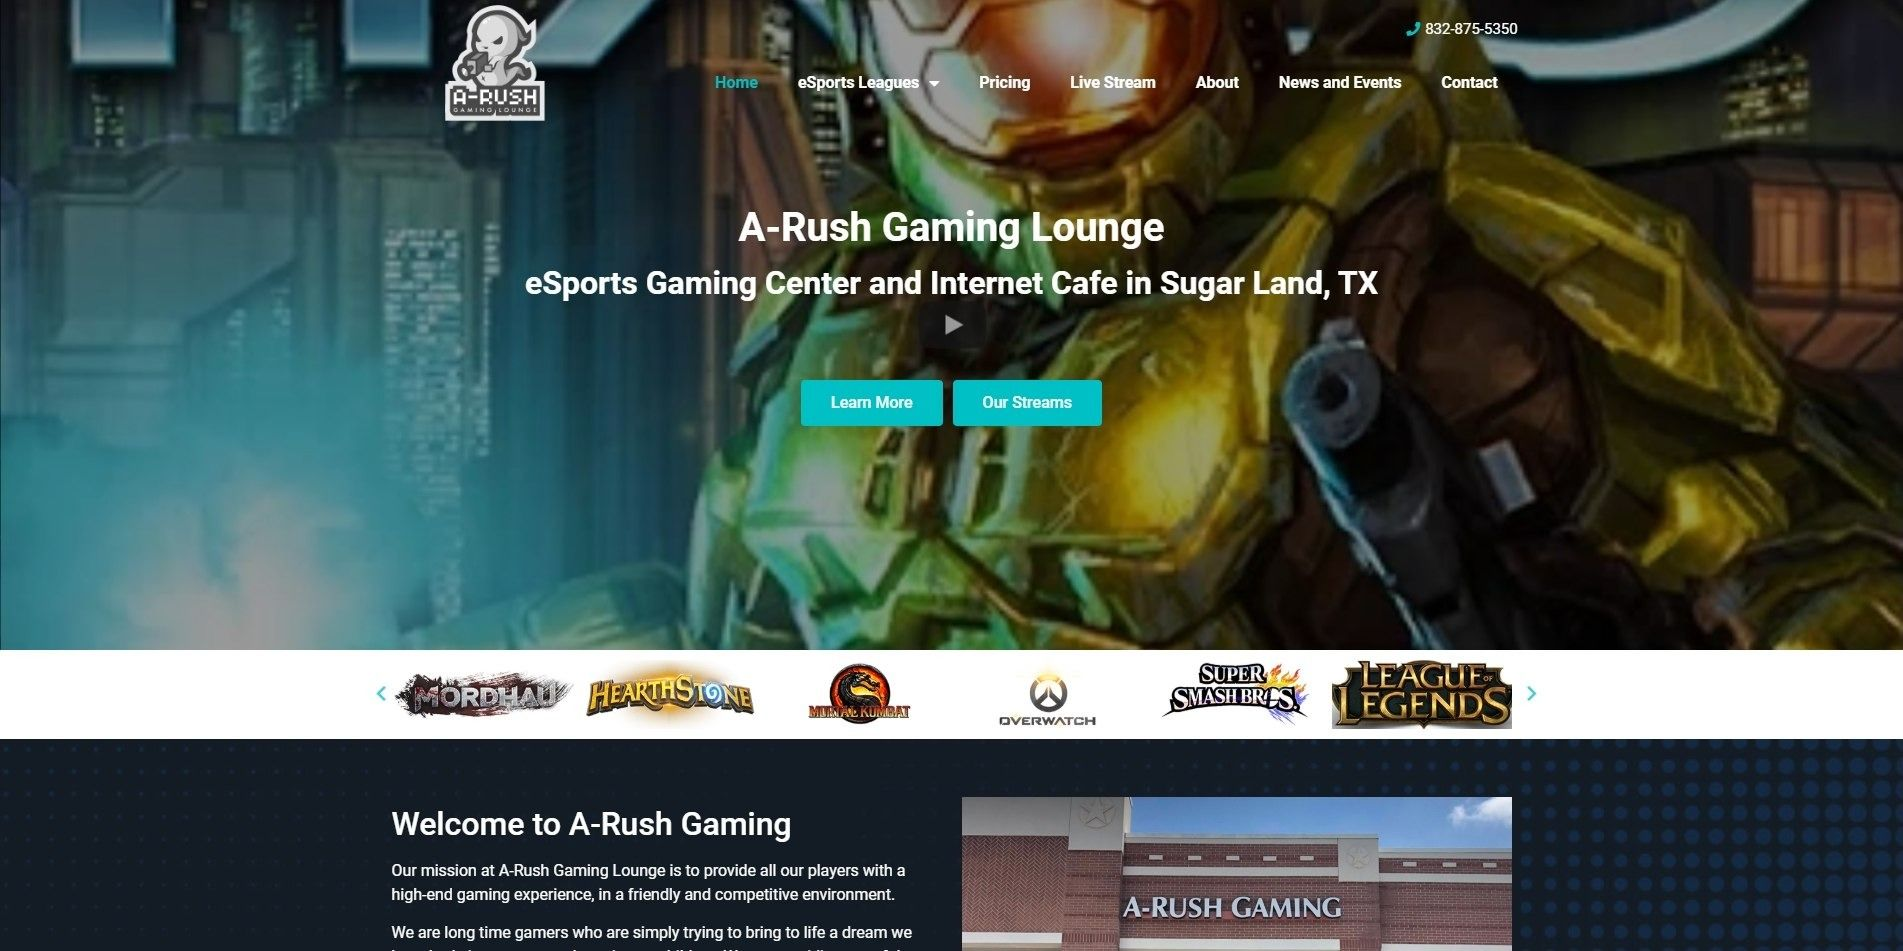 eSports Gaming Center Homepage